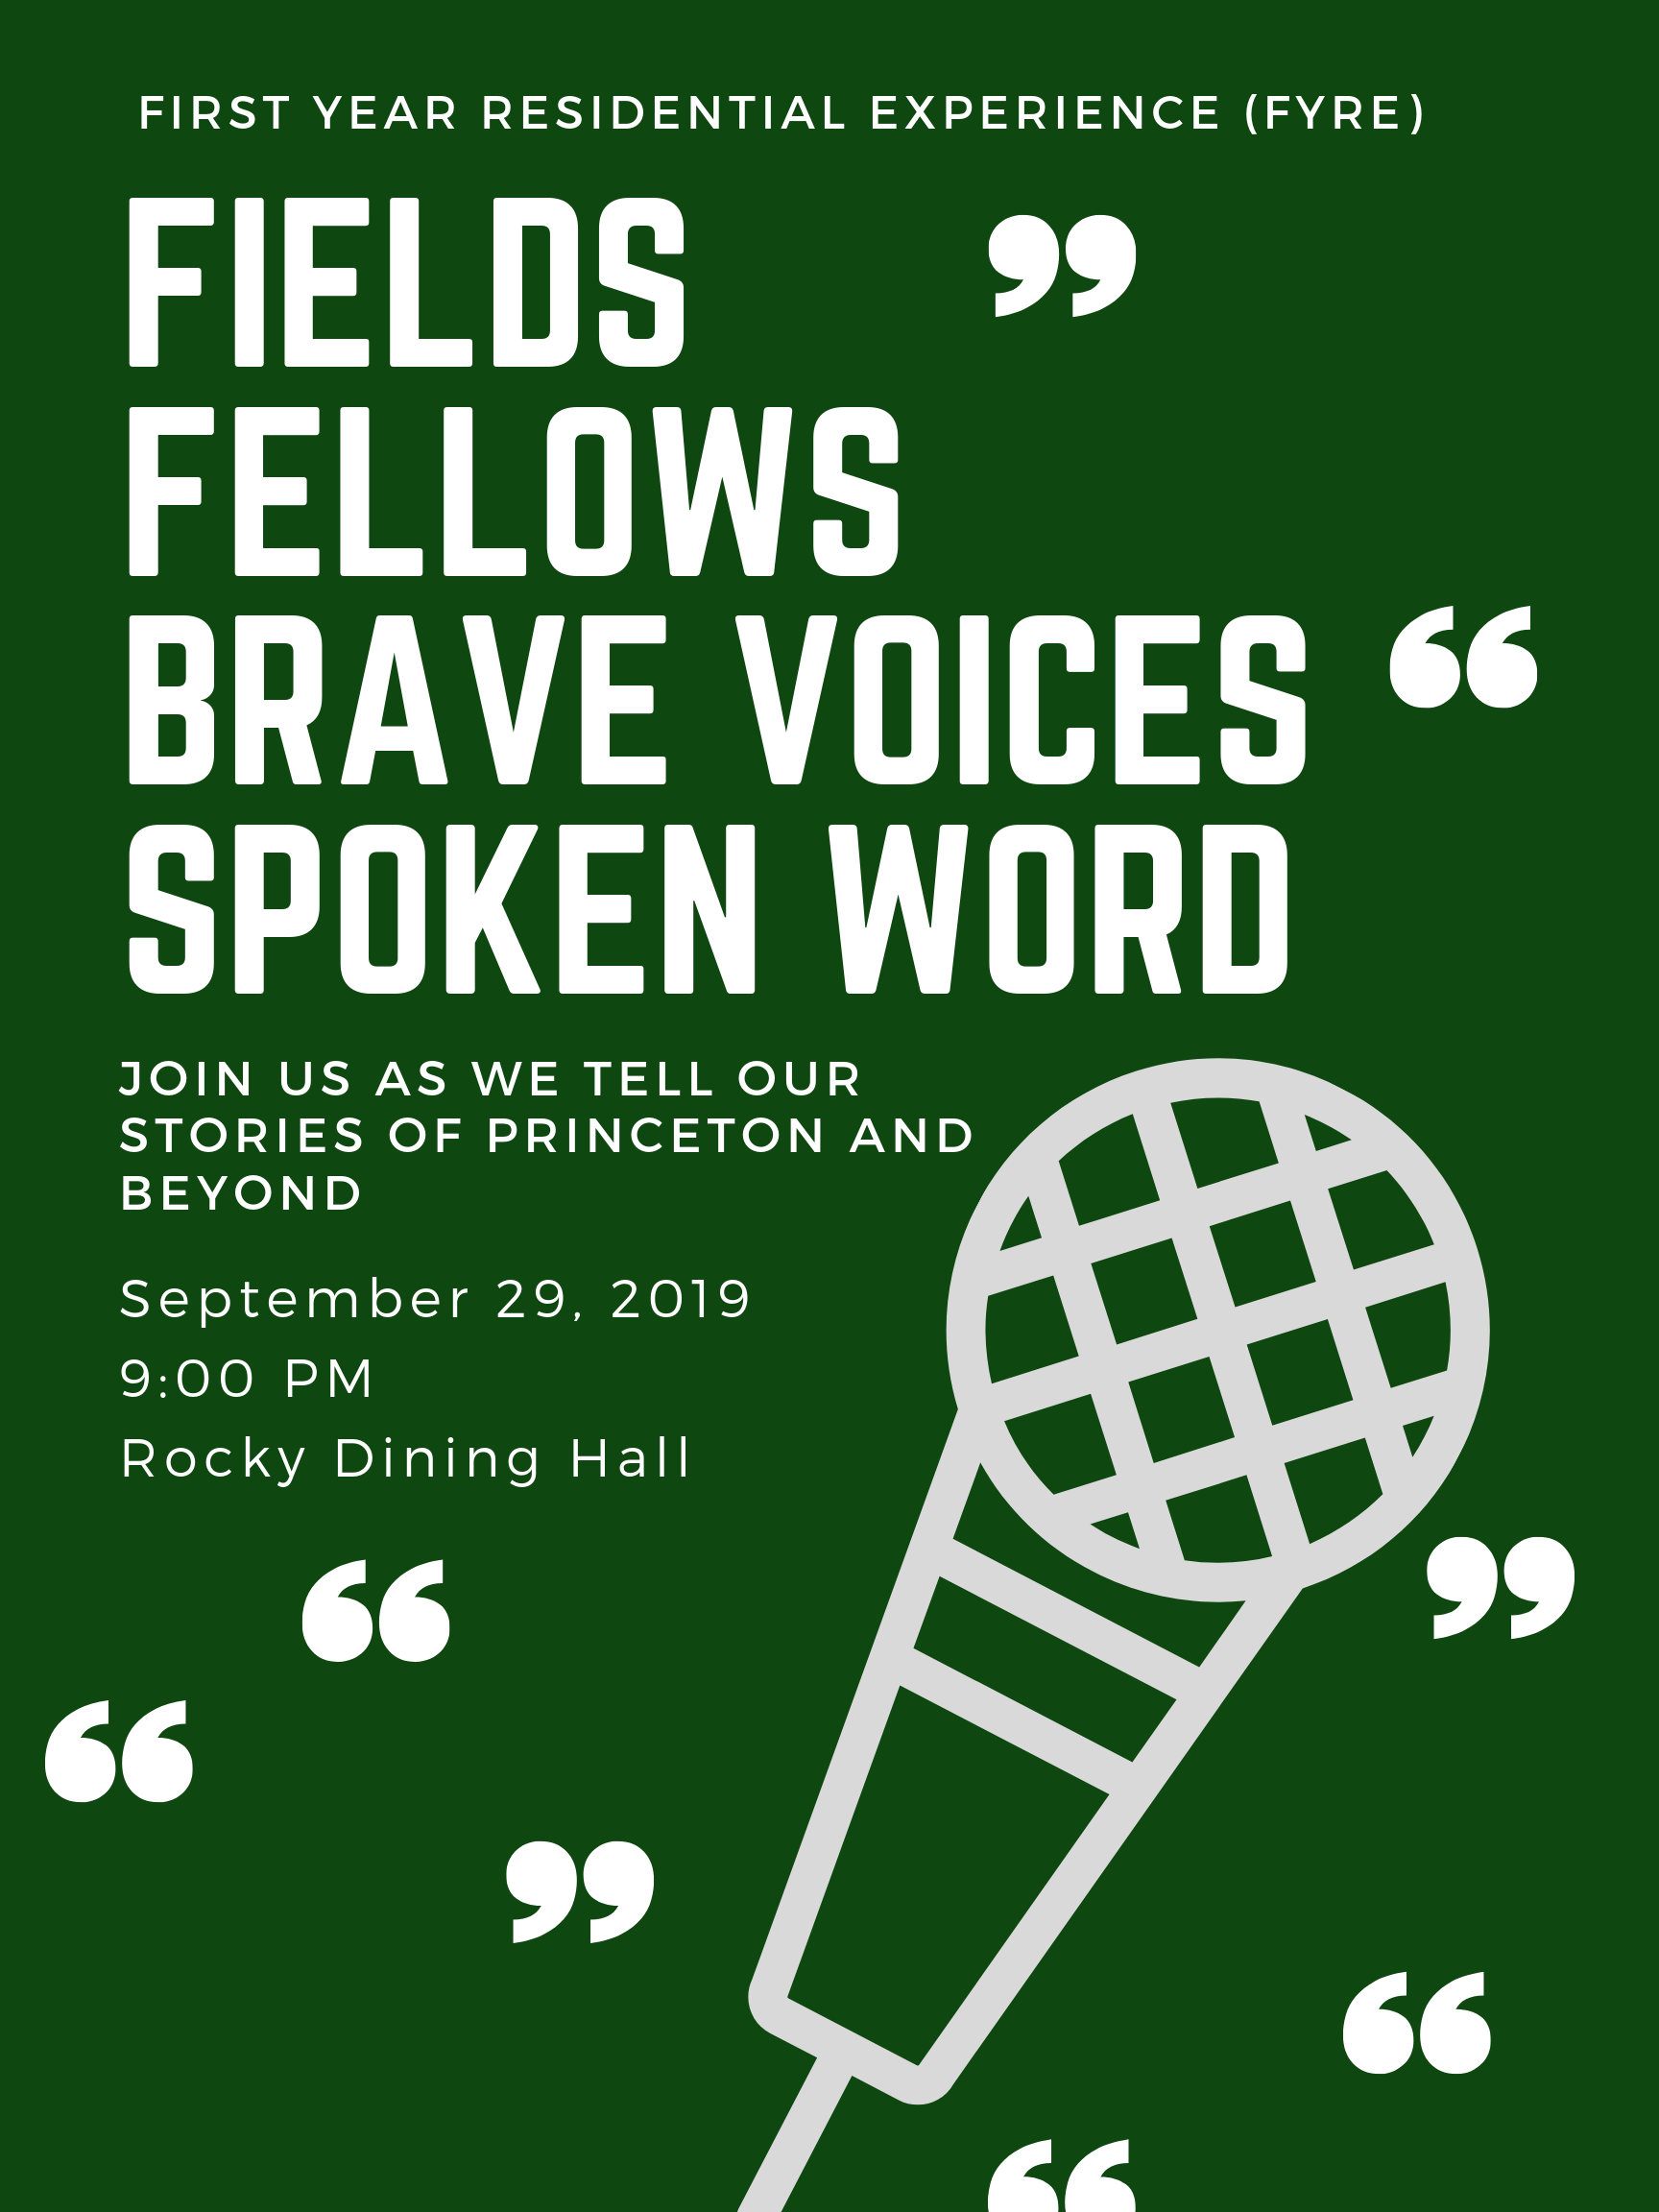 fields fellows brave voices spoken word.png